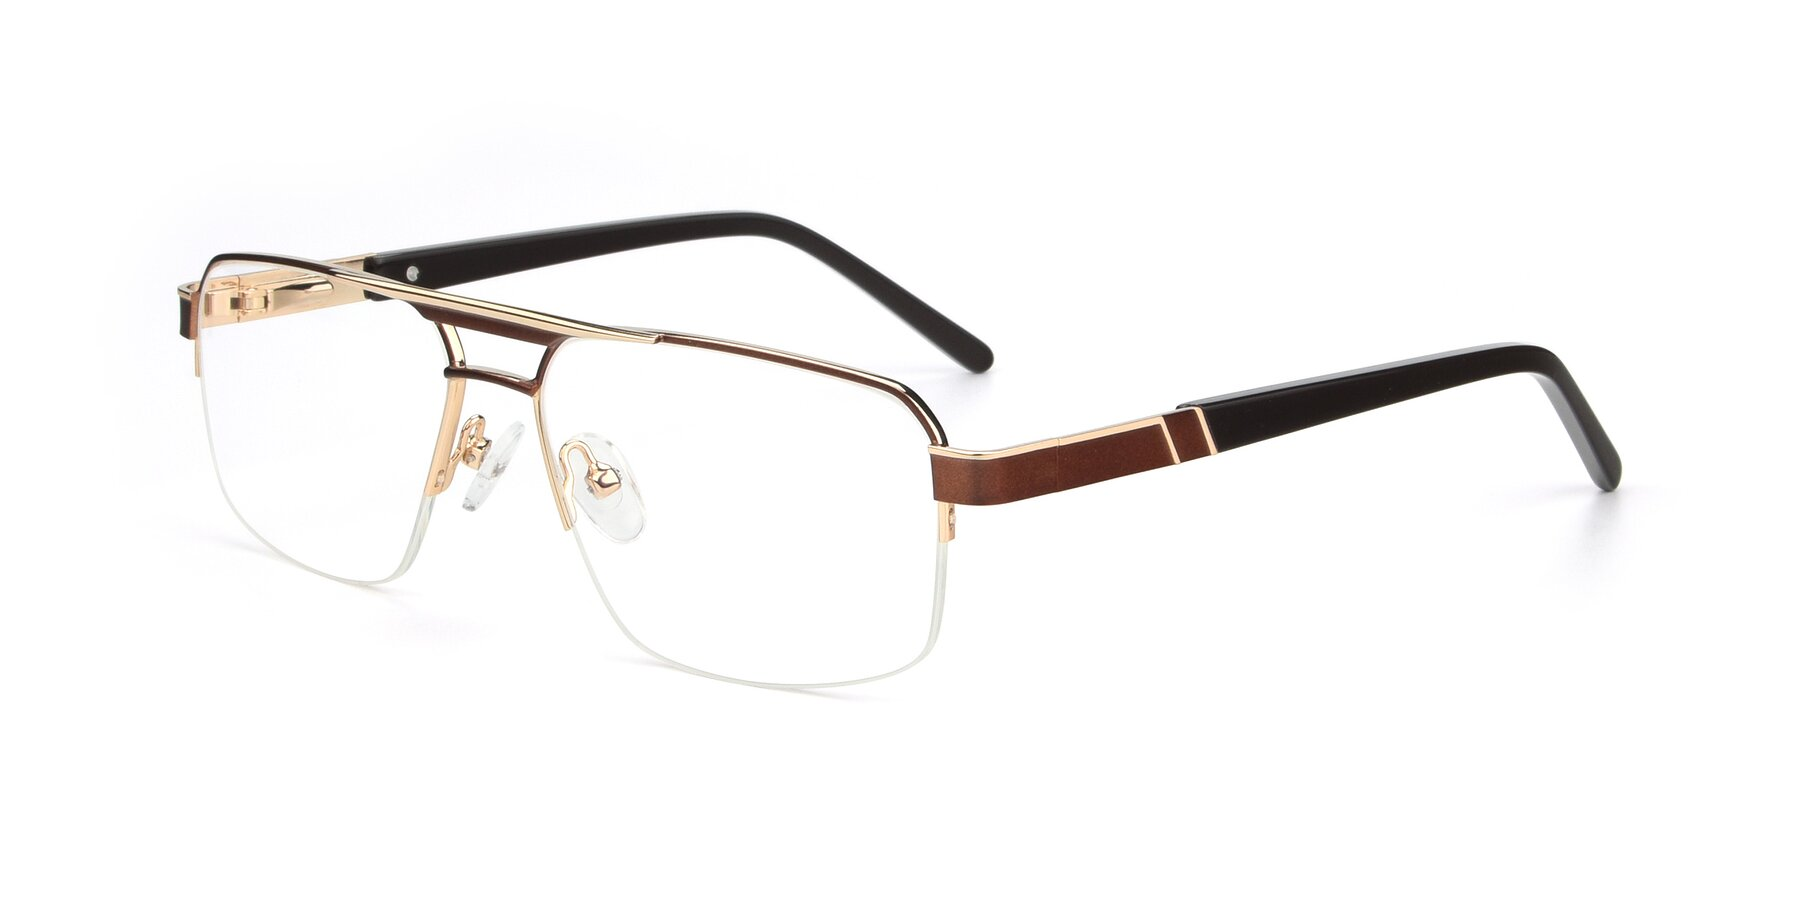 Angle of 19004 in Bronze-Gold with Clear Blue Light Blocking Lenses